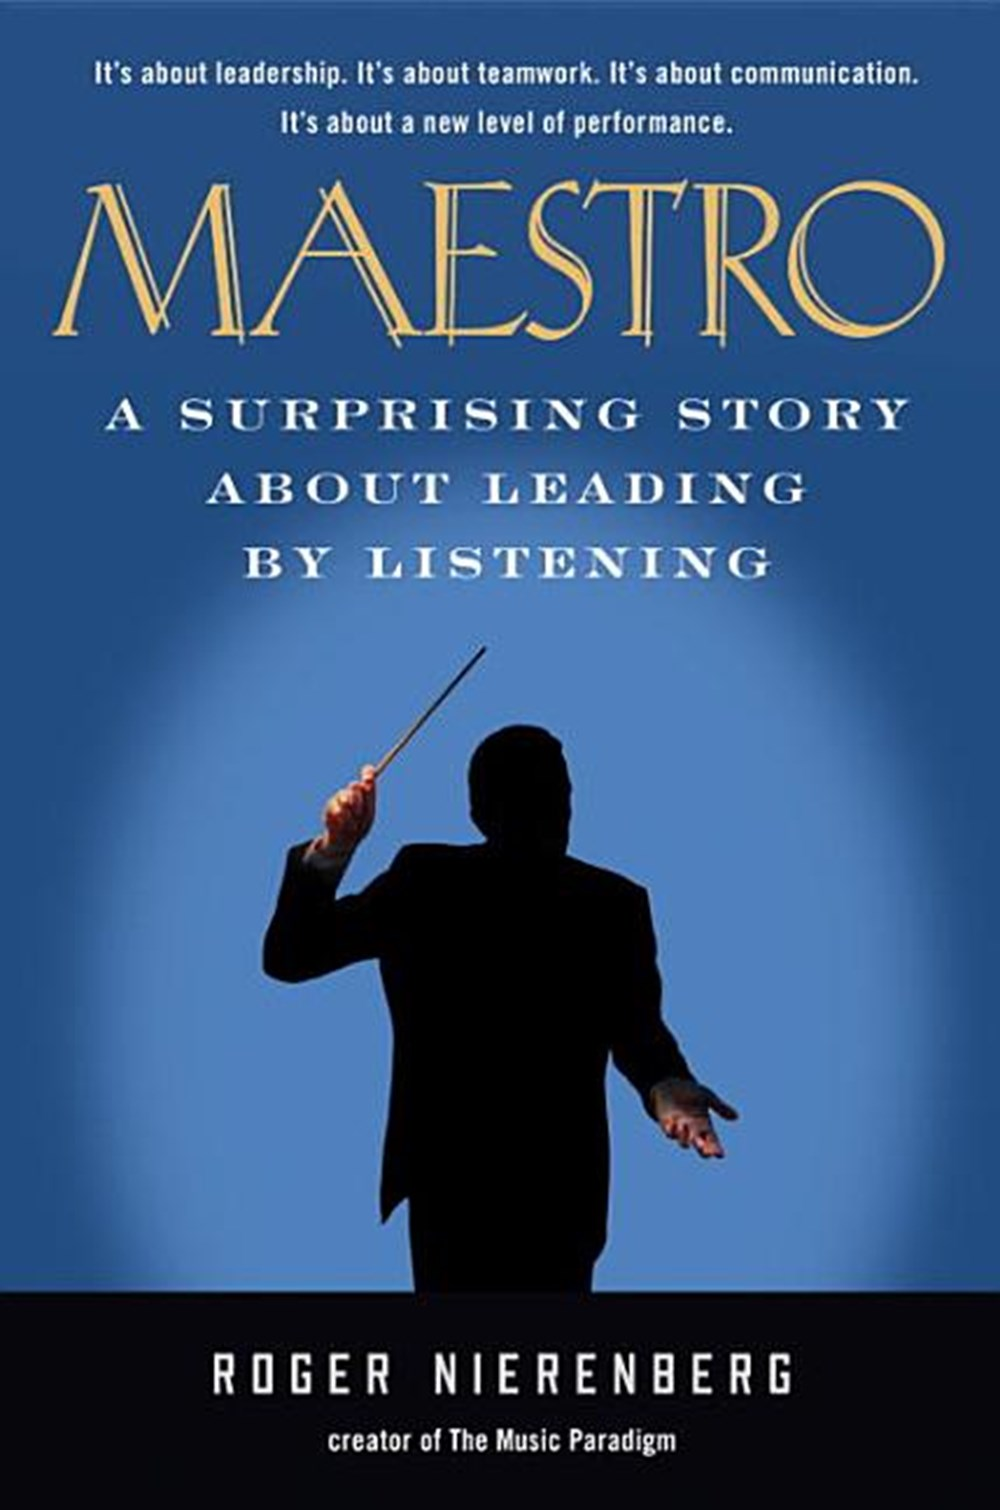 Maestro A Surprising Story about Leading by Listening